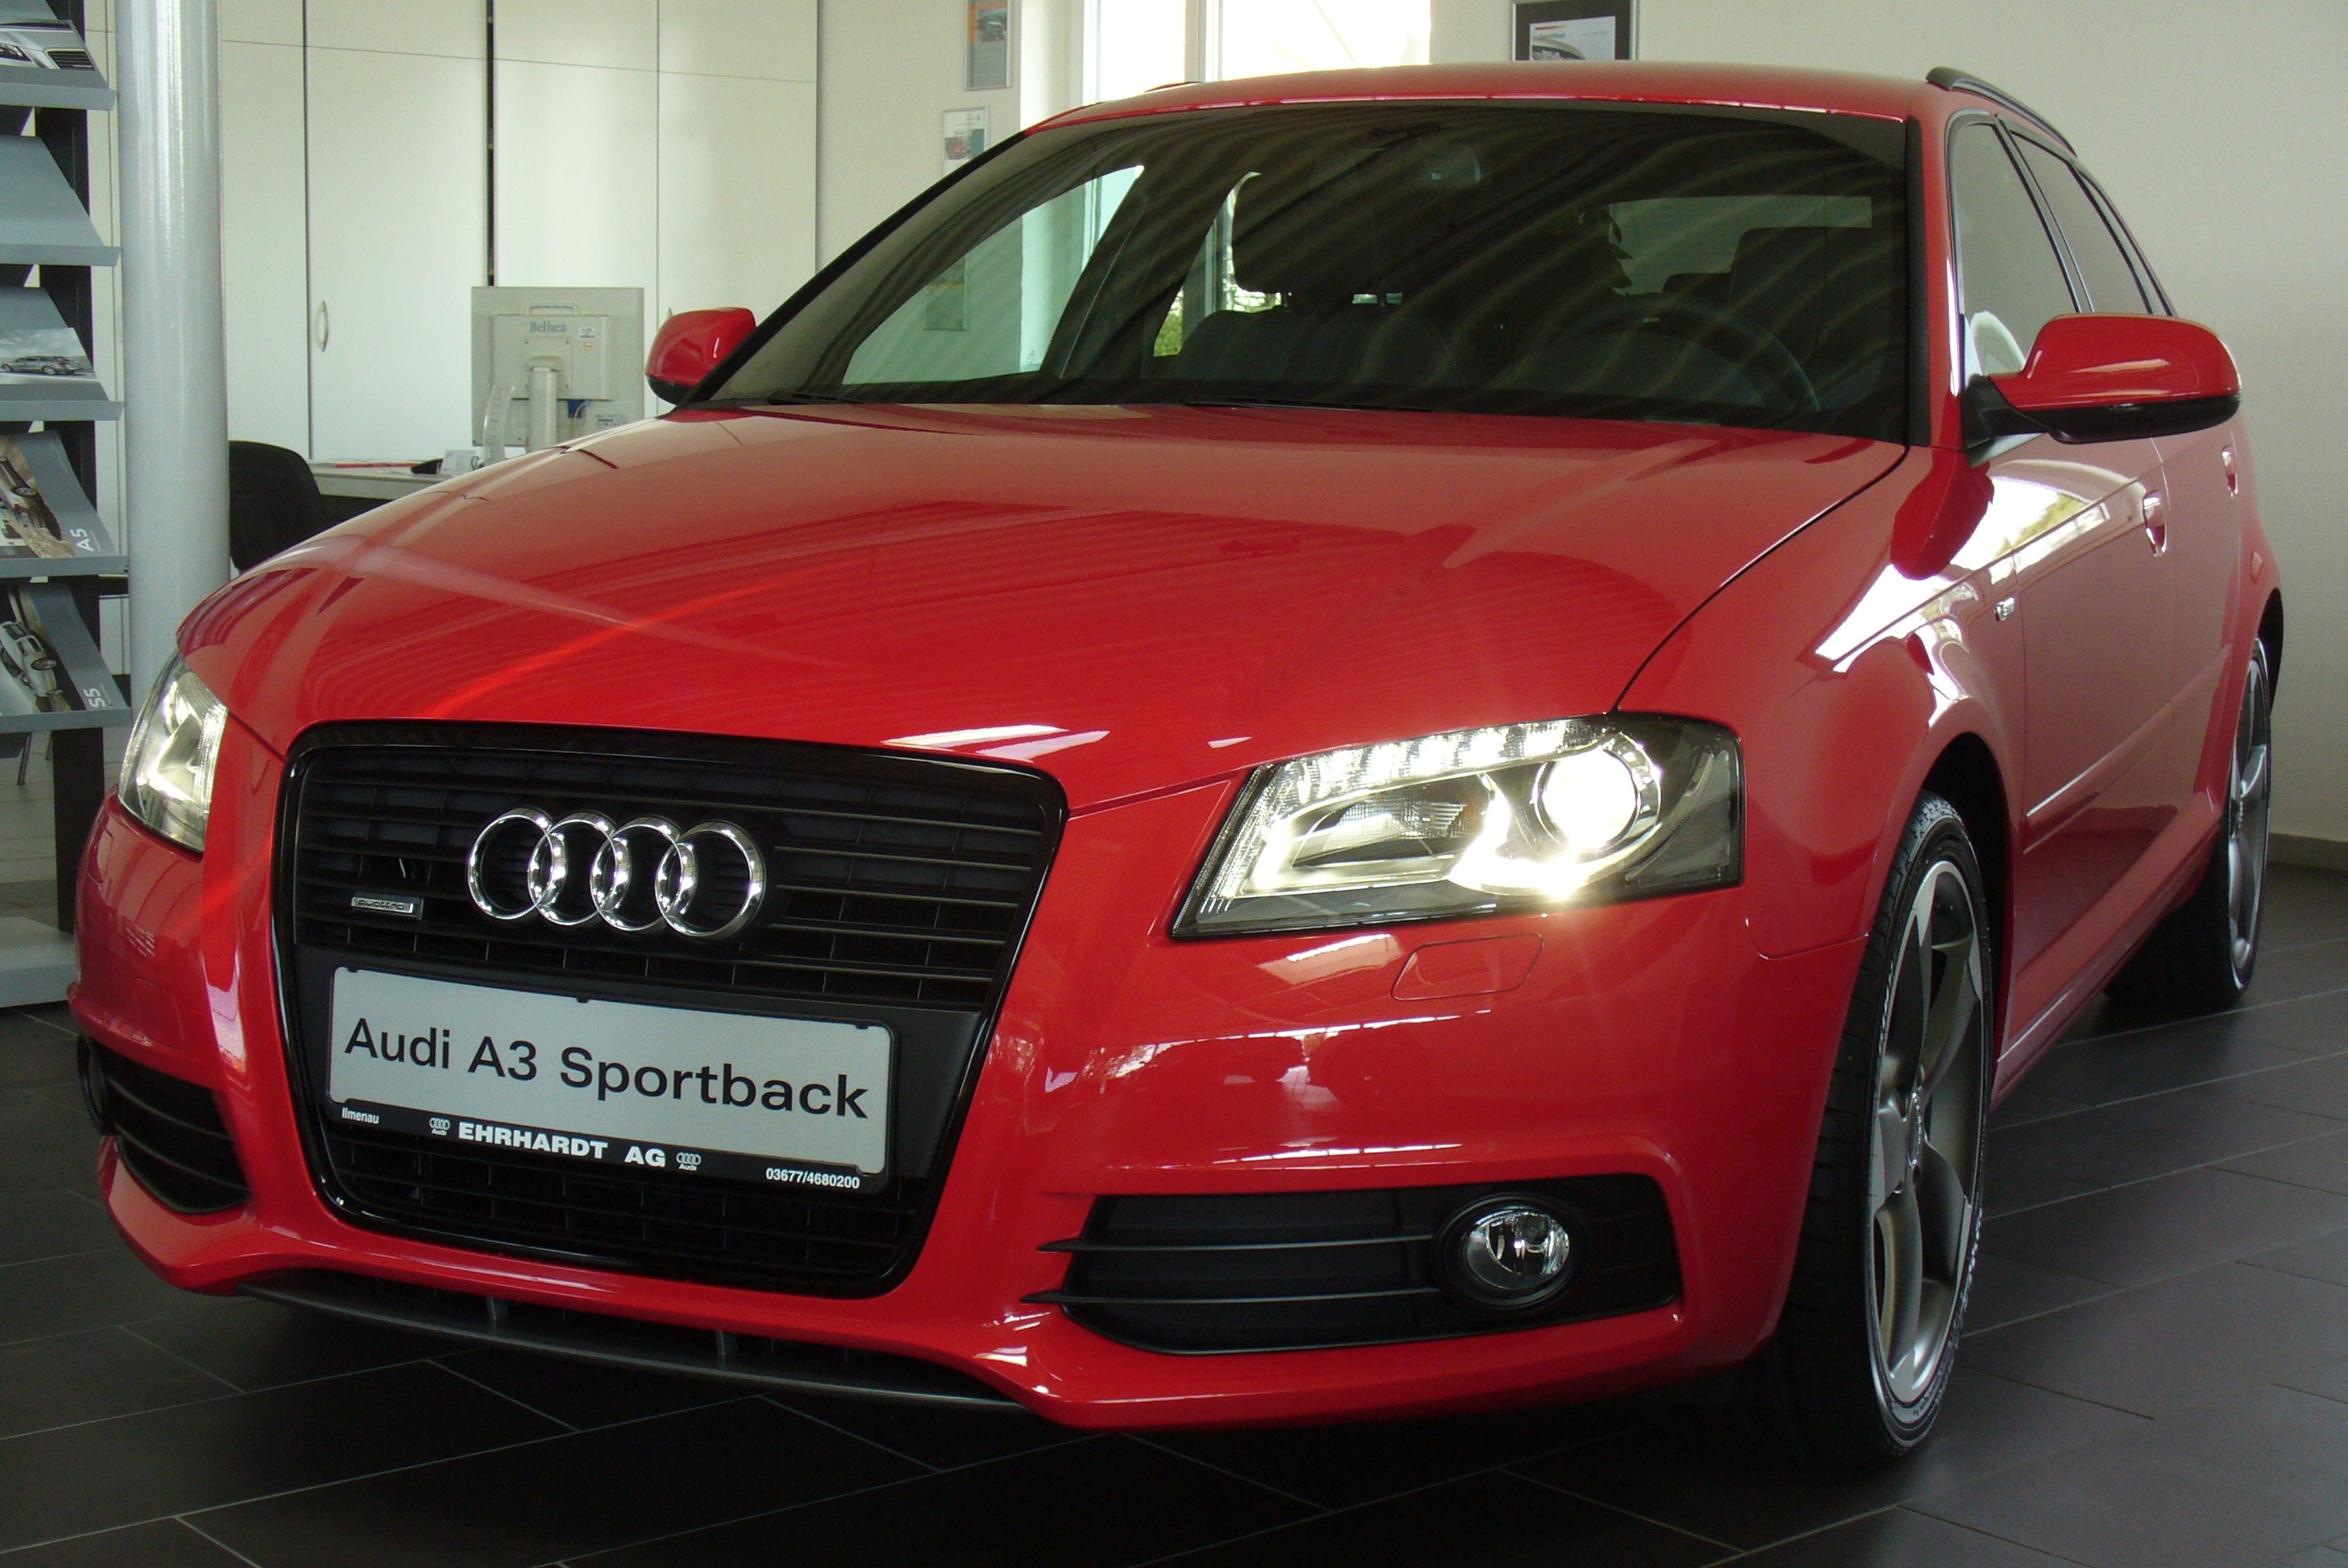 audi a3 2 0 tdi sportback quattro photos and comments. Black Bedroom Furniture Sets. Home Design Ideas